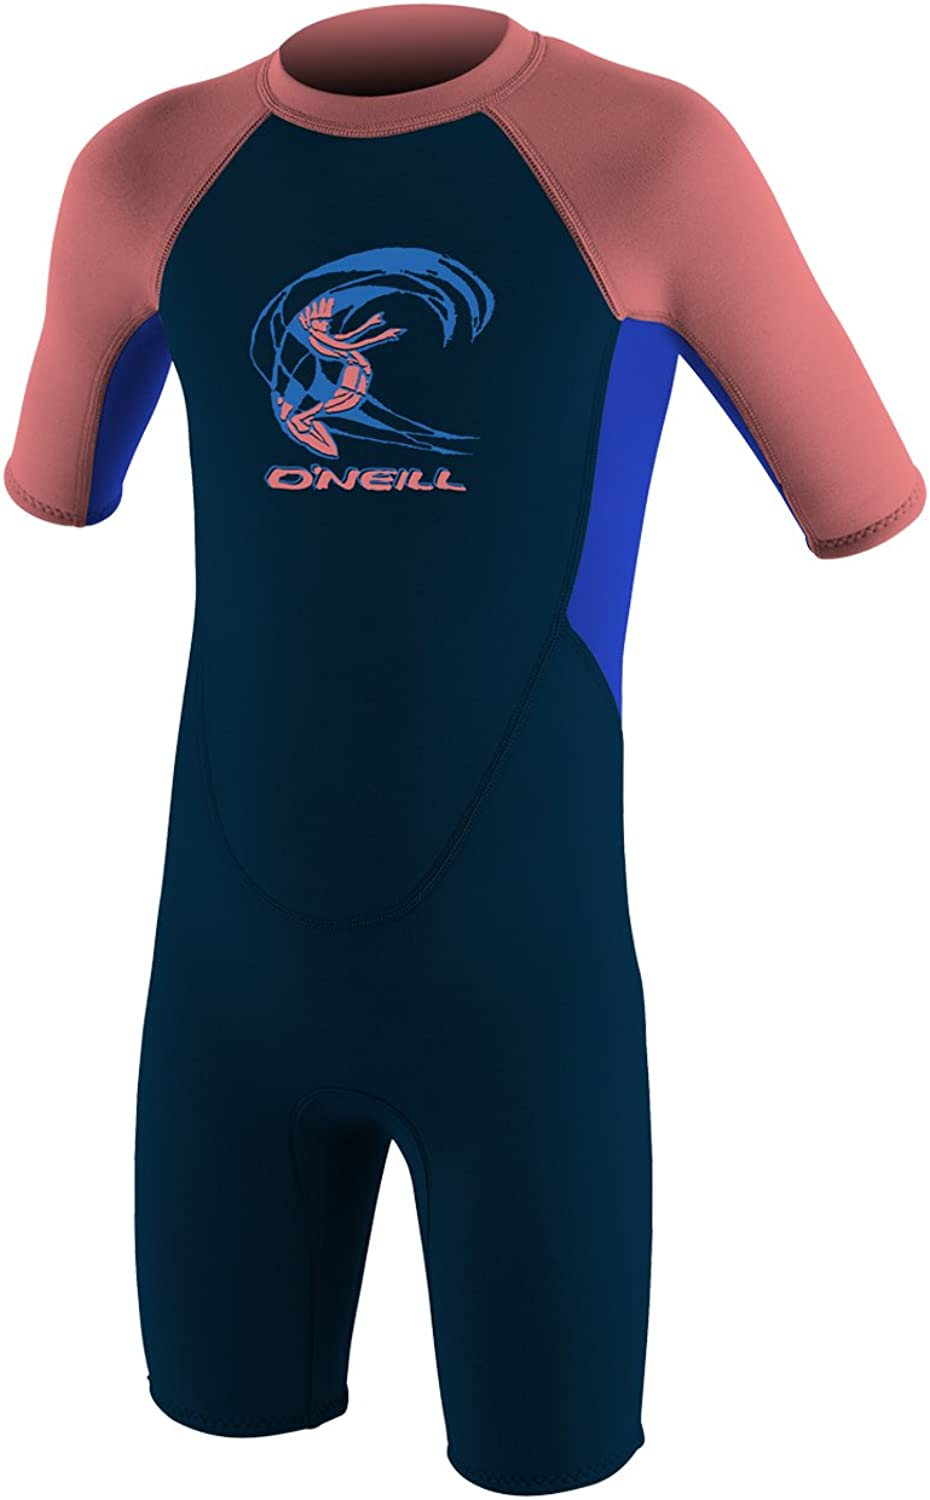 O'Neill Toddler Reactor2 2mm Back Zip Short Sleeve Spring Wetsuit, Slate blueee Coral, 2